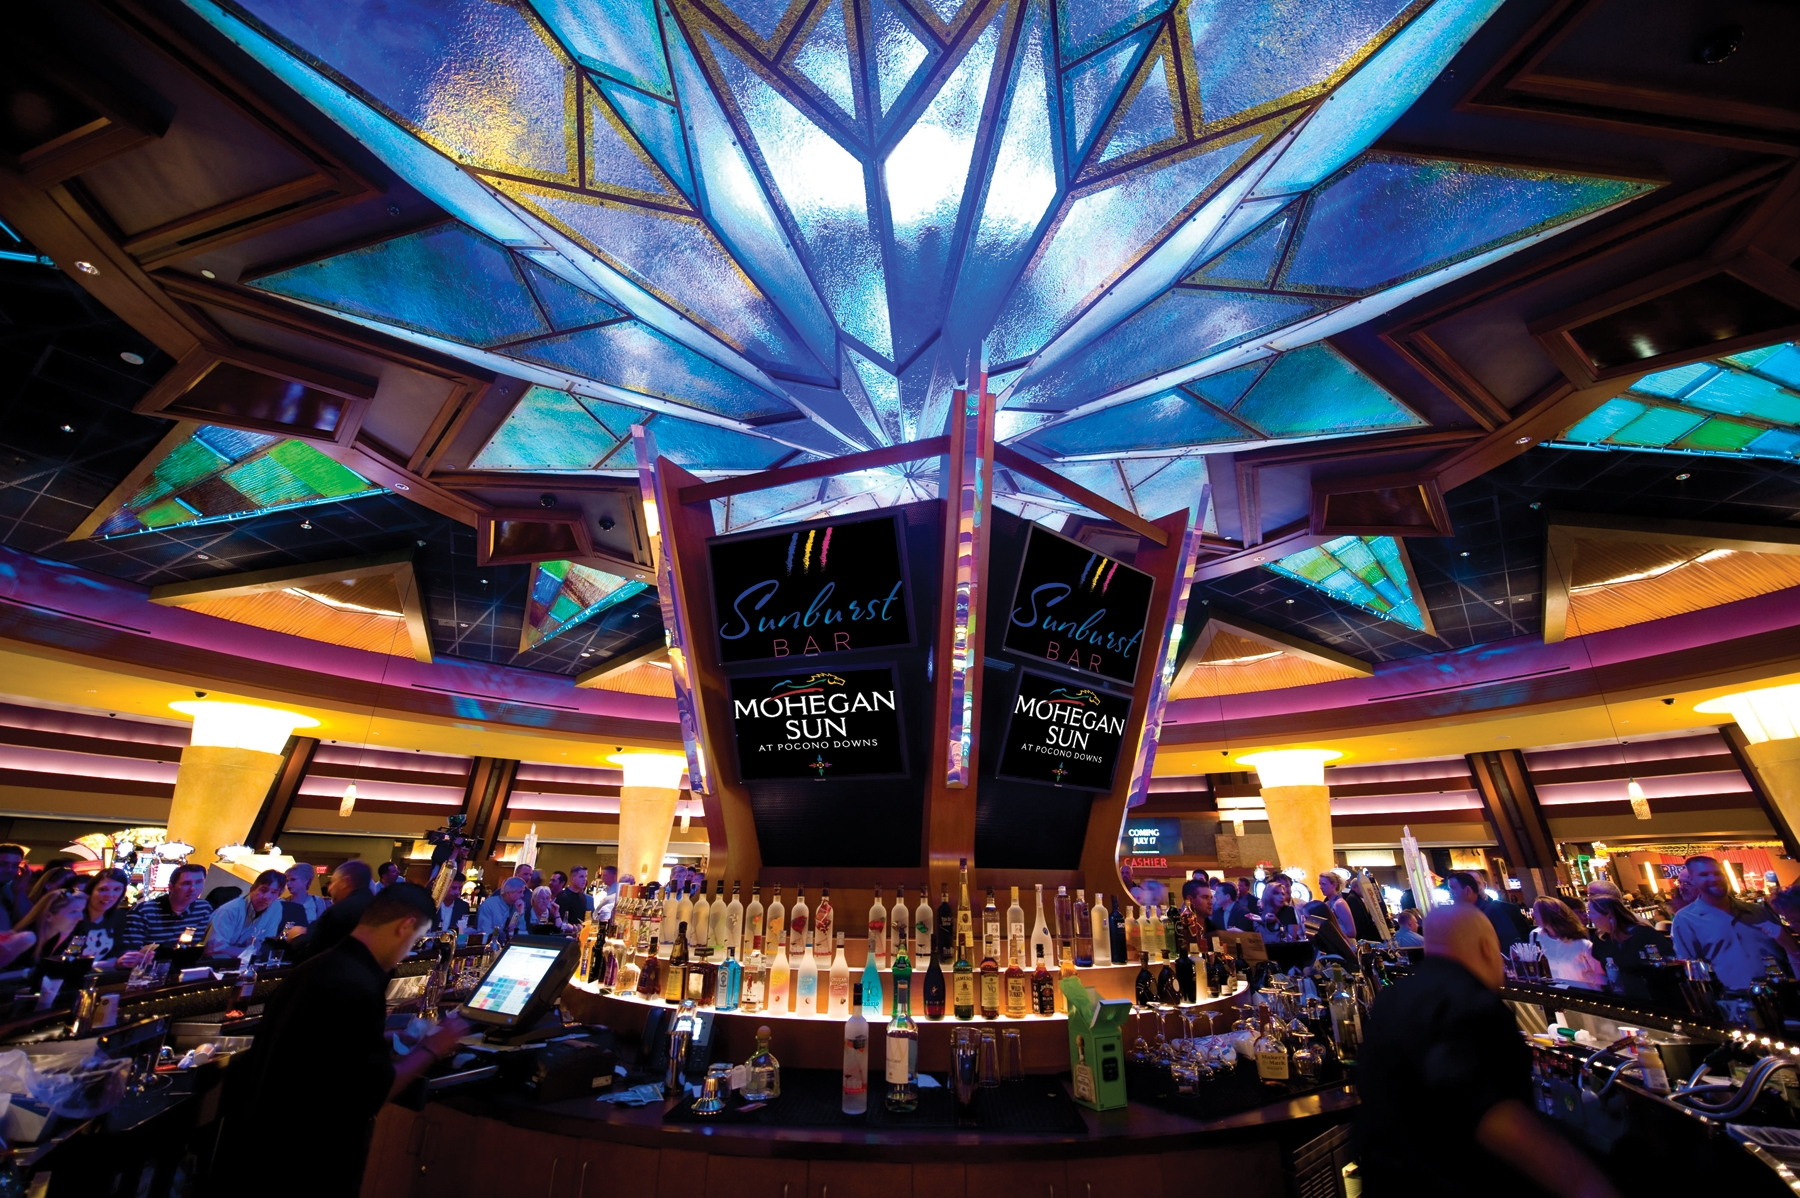 Casinos in the midwest eye casino